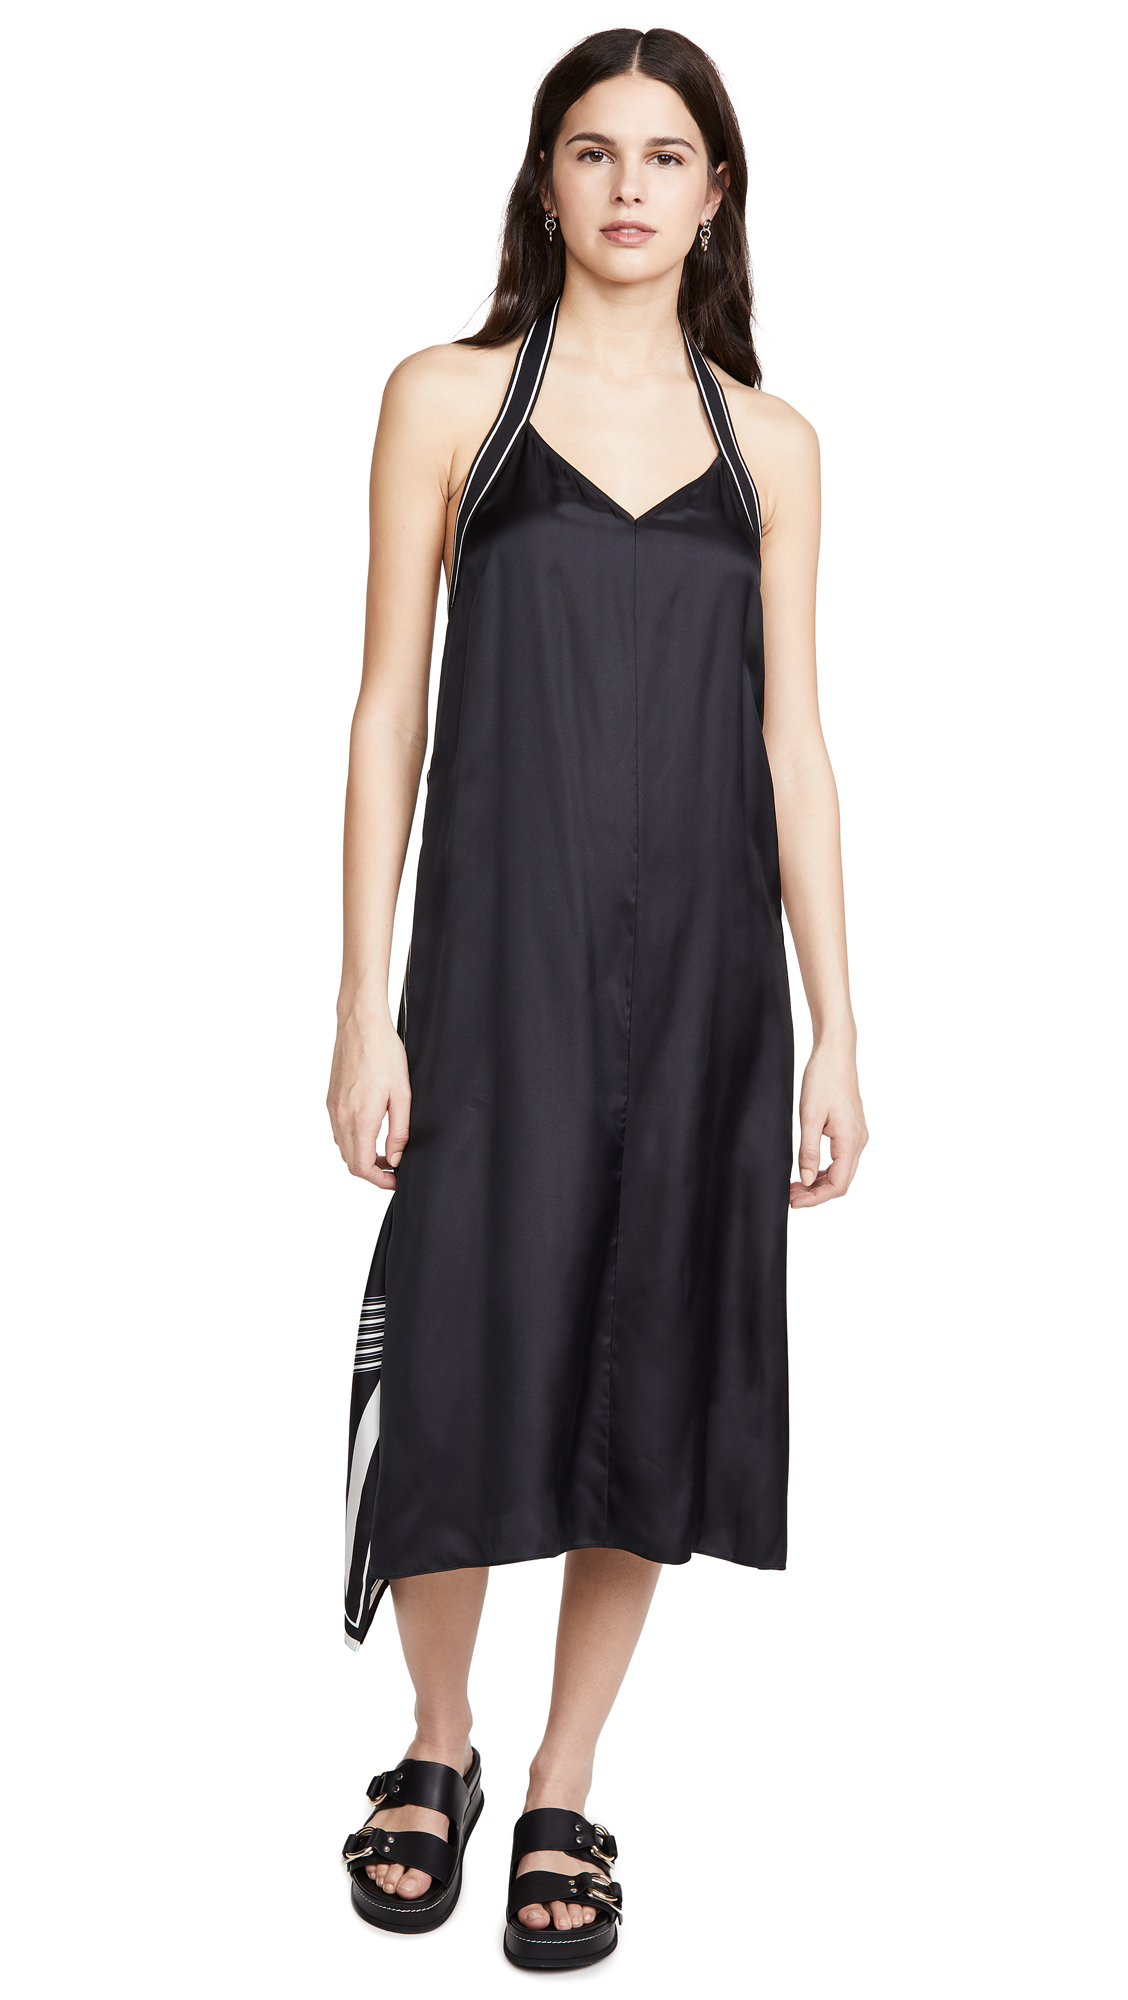 Rag & Bone Isadora Halter Dress - 50% Off Sale